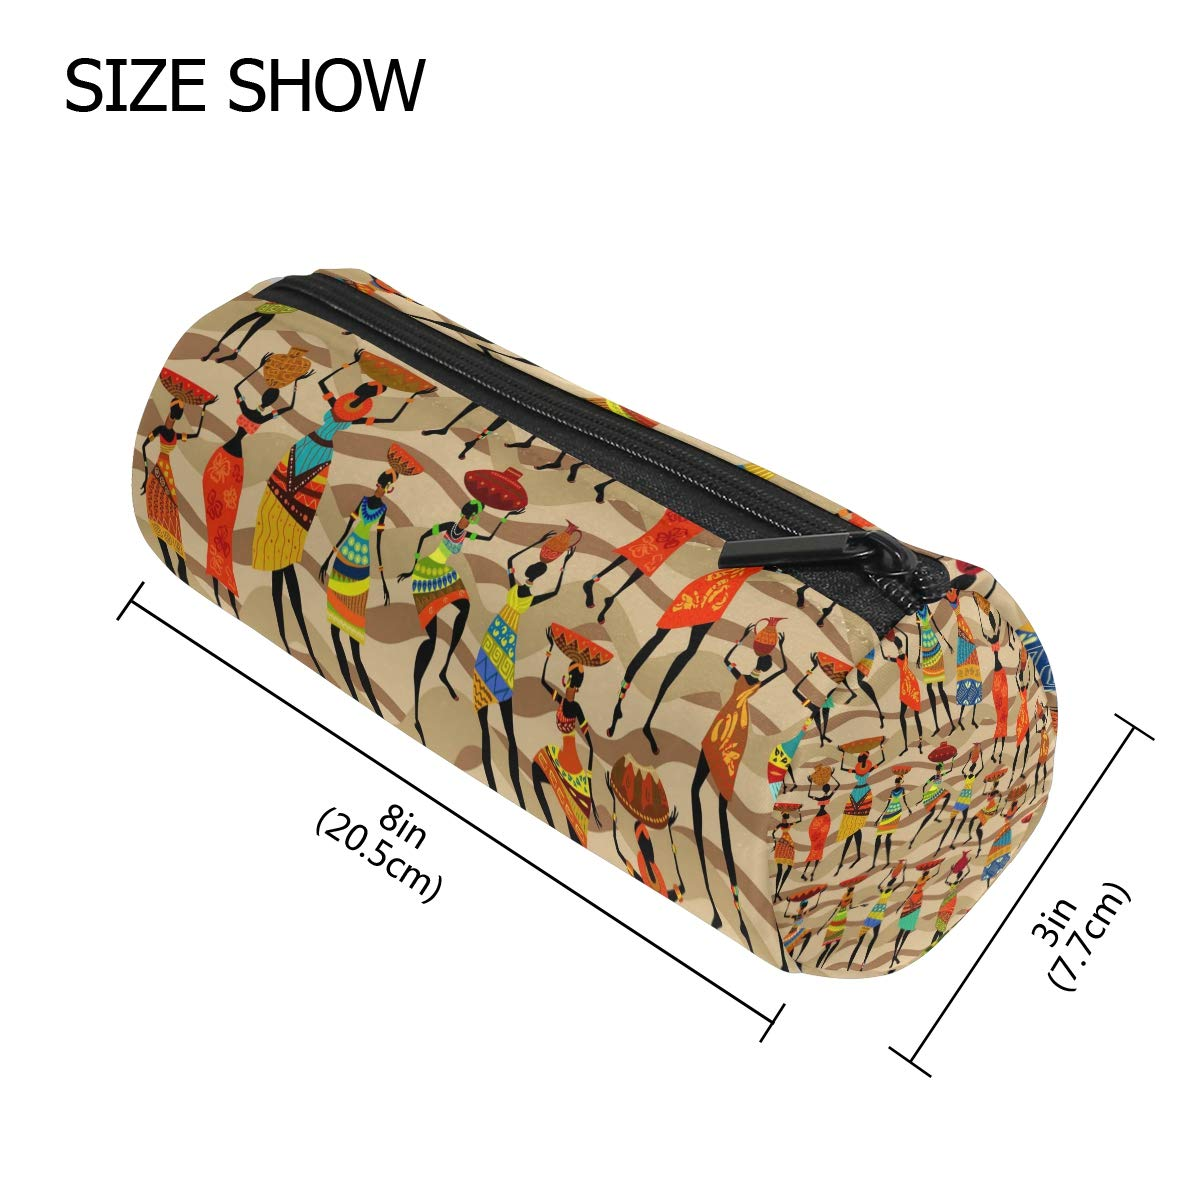 1eaed11c567b Amazon.com : BETTKEN Zipper Pencil Case African Tribal Women Pattern ...